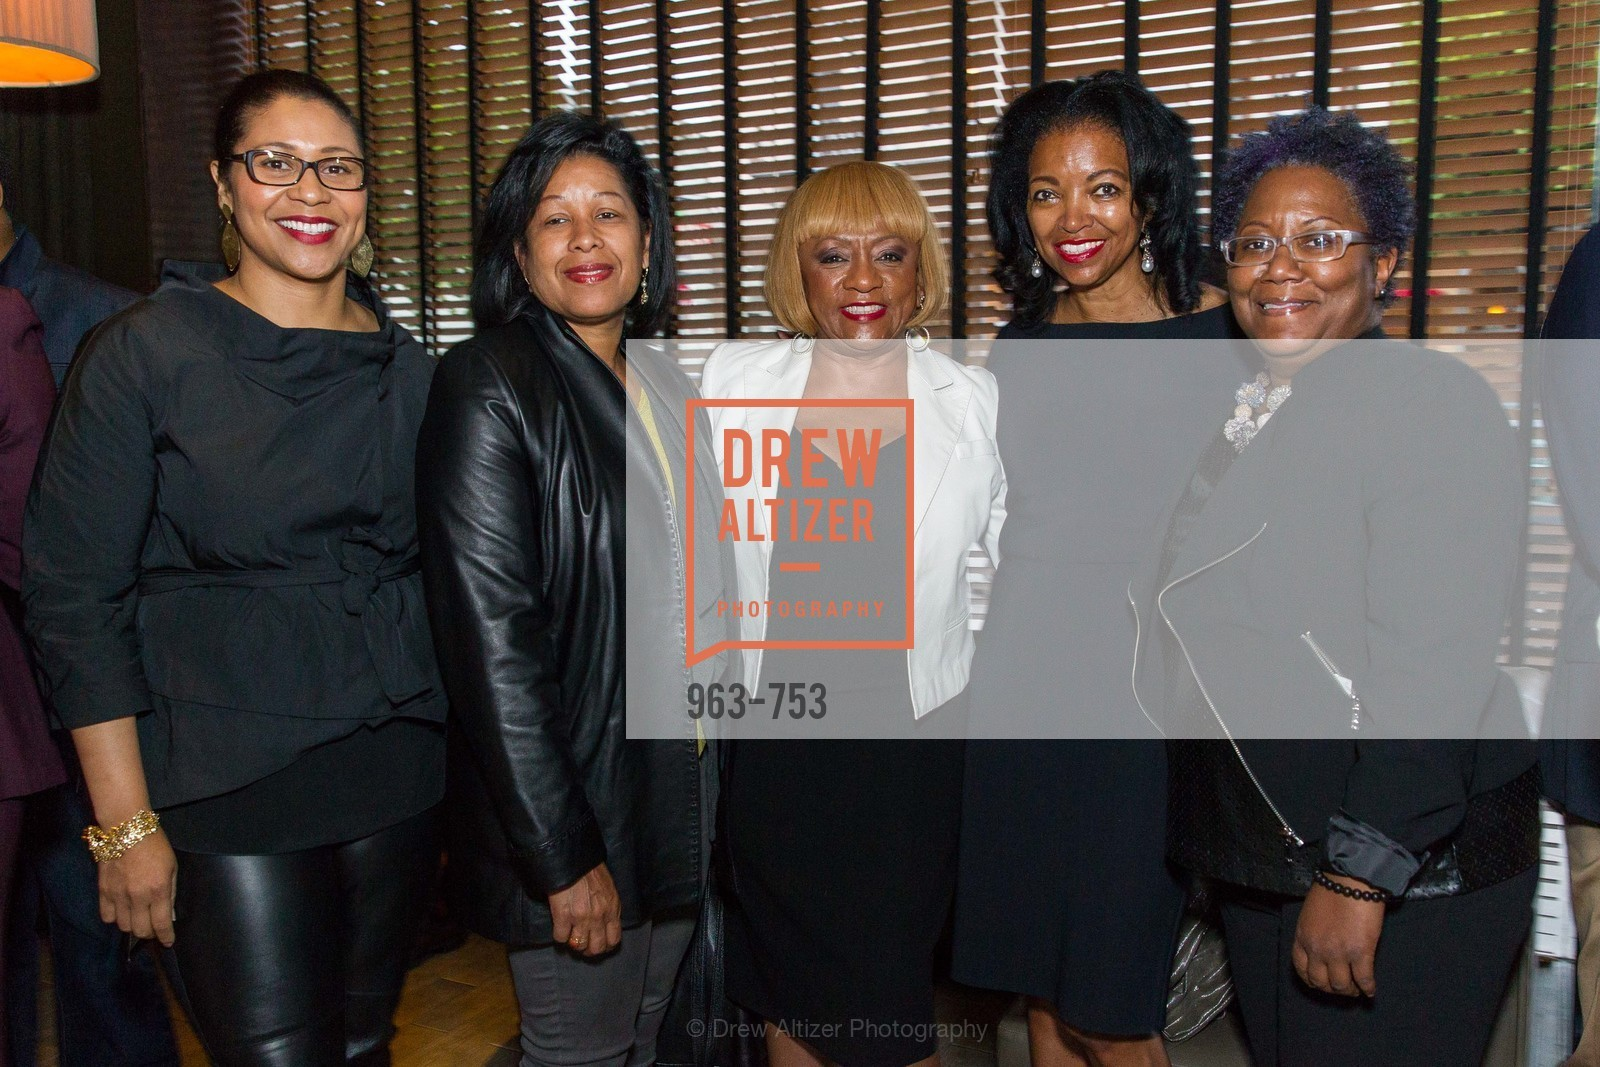 London Breed, Kimberly Brandon, Brenda Wright, Denise Bradley Tyson, Joyce Dyson, INSPIRED LUXE Launch Party Hosted by Denise Bradley Tyson, US, May 28th, 2015,Drew Altizer, Drew Altizer Photography, full-service agency, private events, San Francisco photographer, photographer california